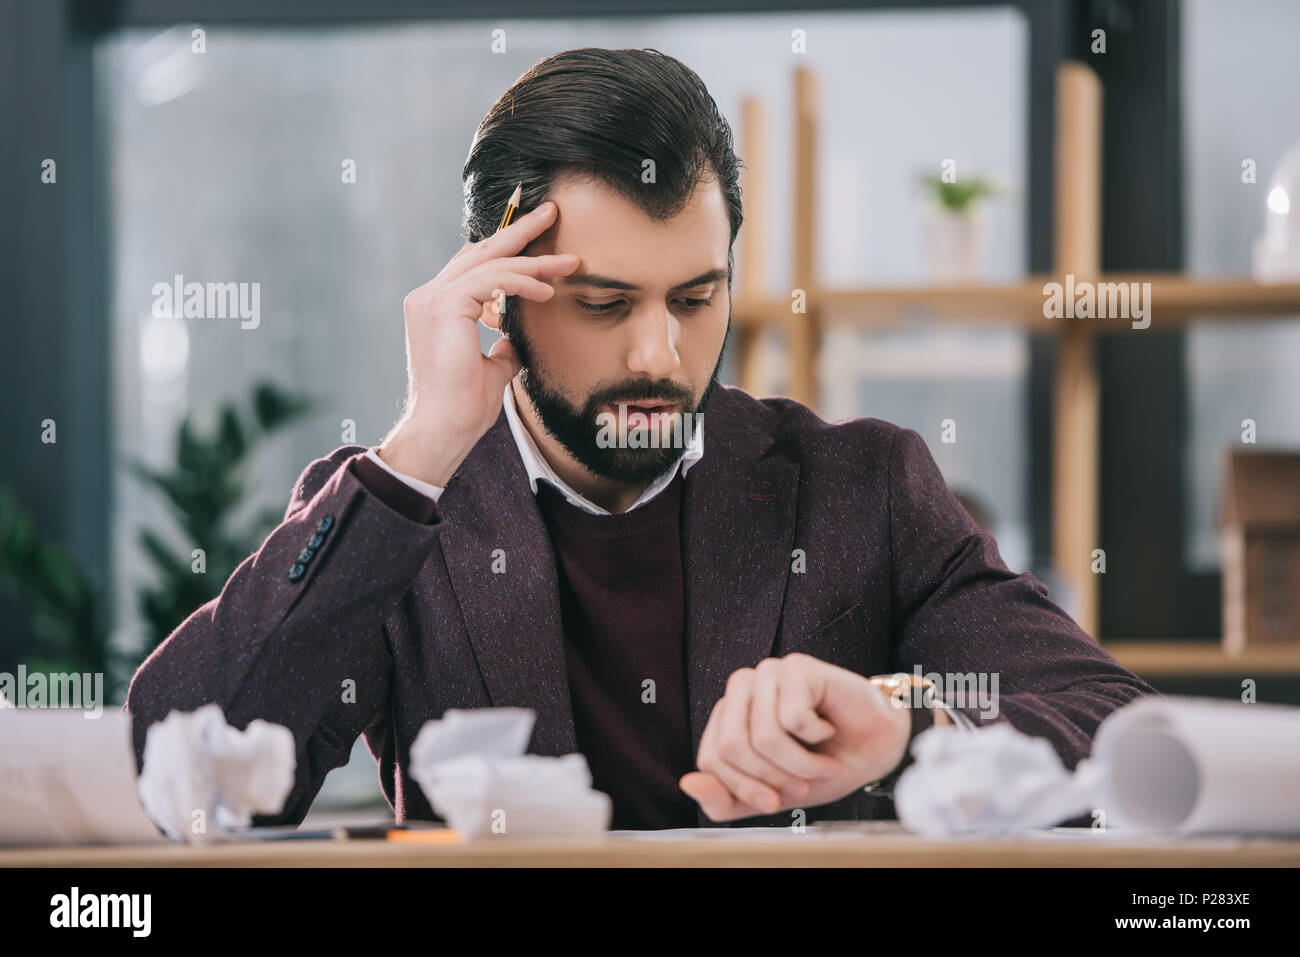 worried architect drawing building plans at workplace with crumpled papers - Stock Image